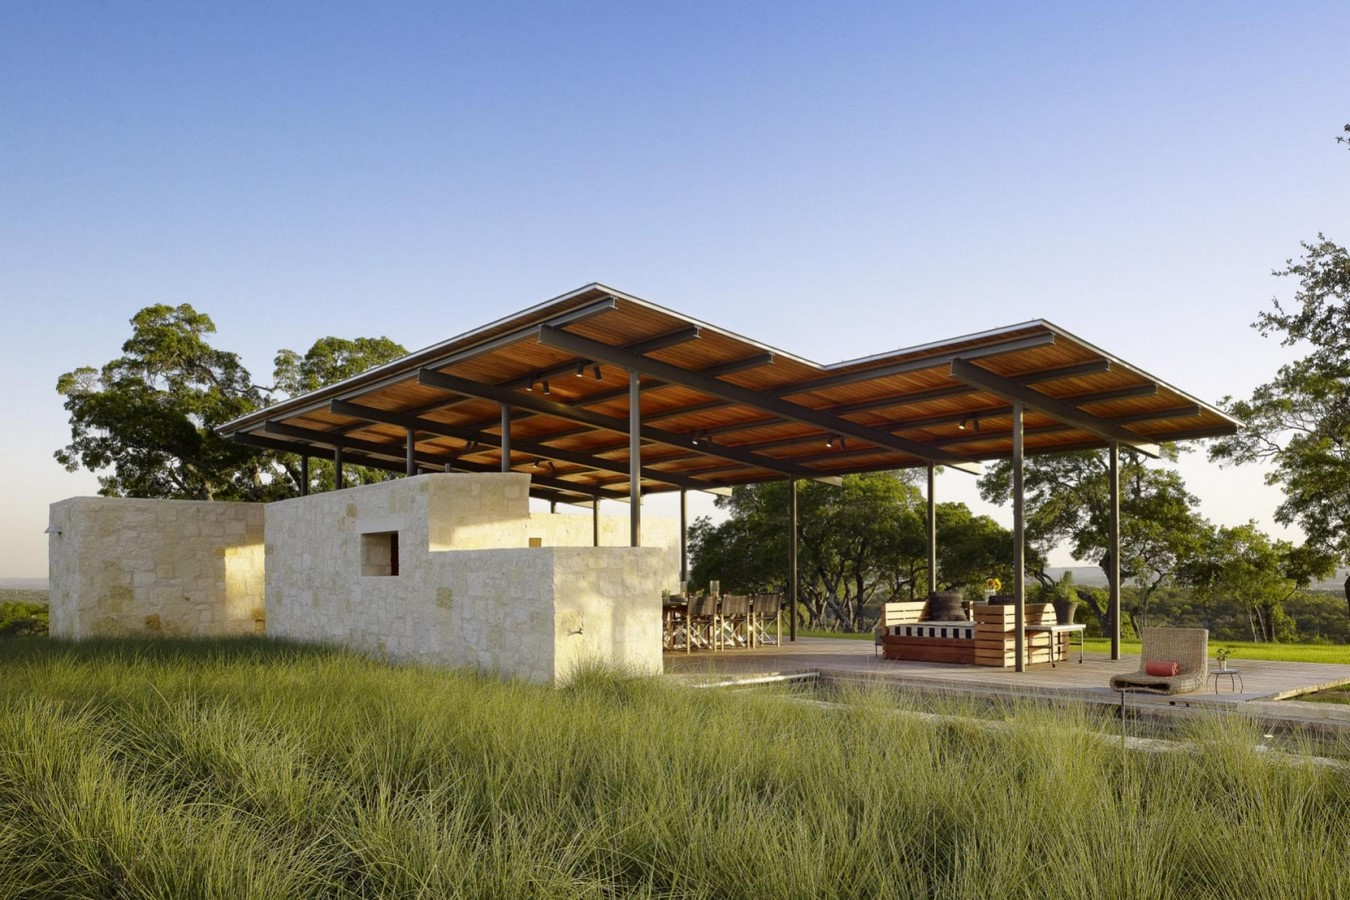 10 Architecture firms leading in sustainable architecture in US - Sheet1